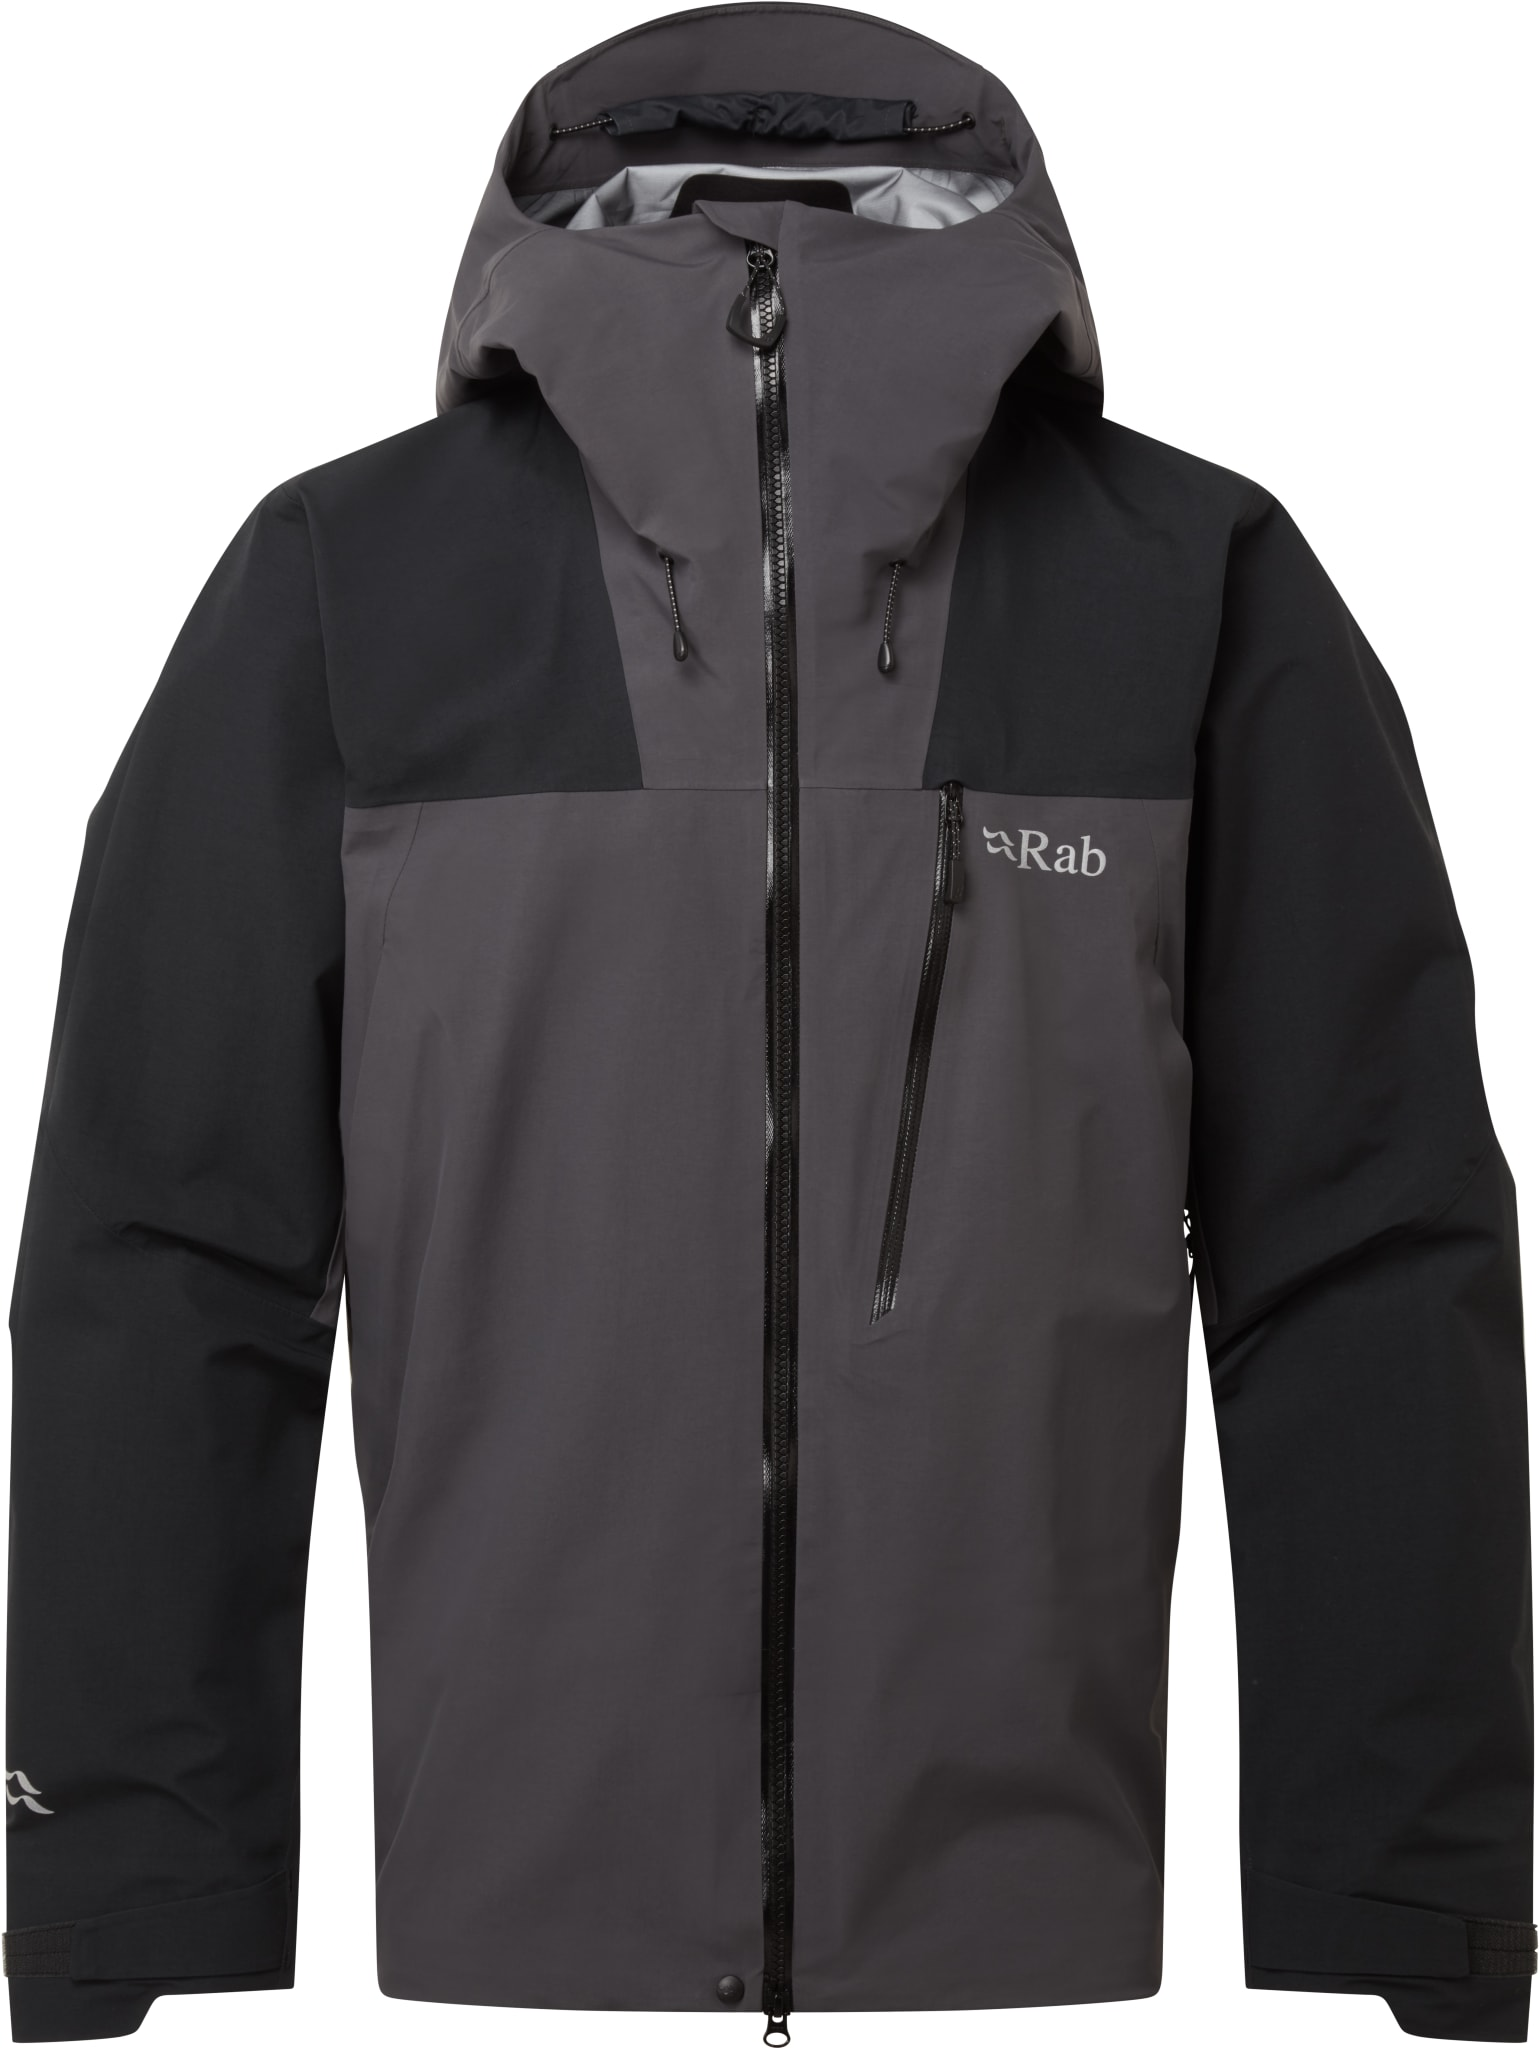 Ladakh GTX Jacket Ms